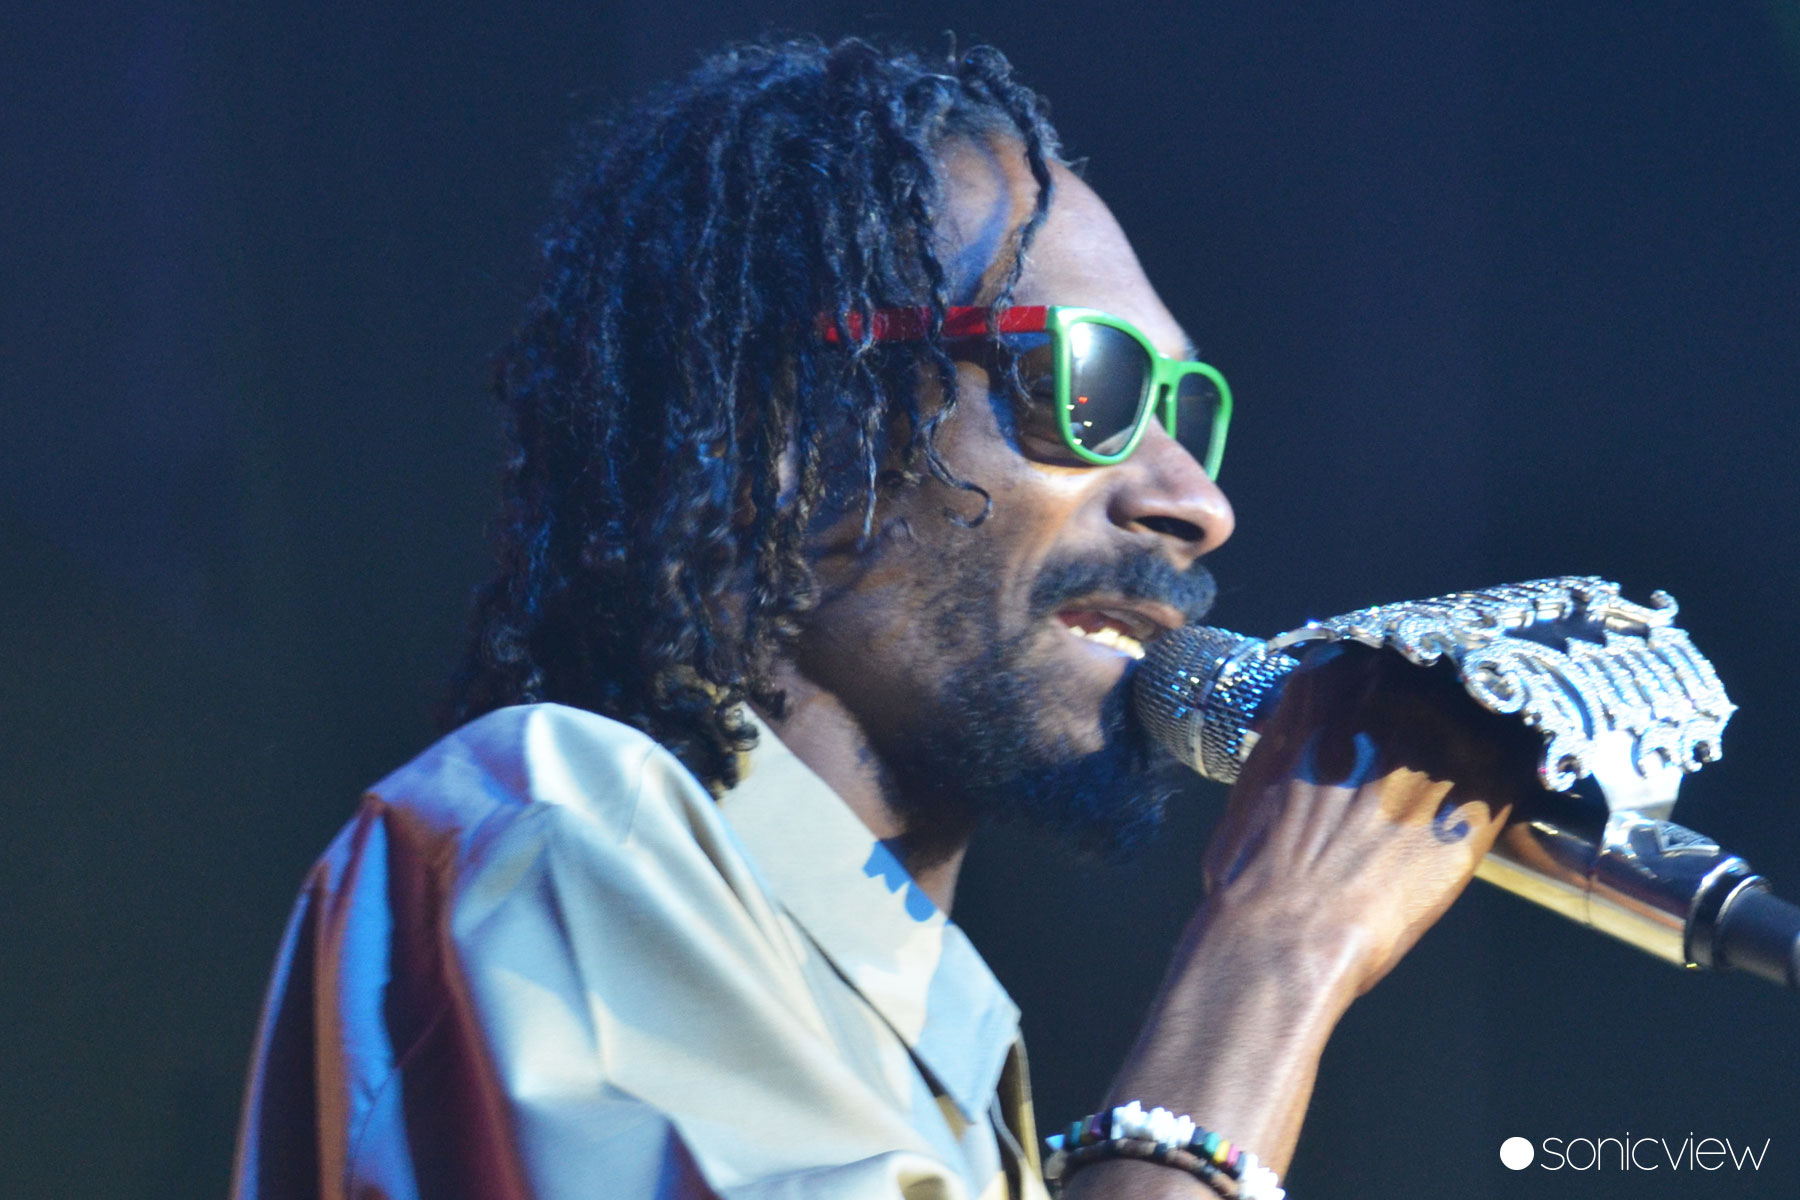 Snoop Dogg: Live at Vega 2012, Copenhagen, Denmark